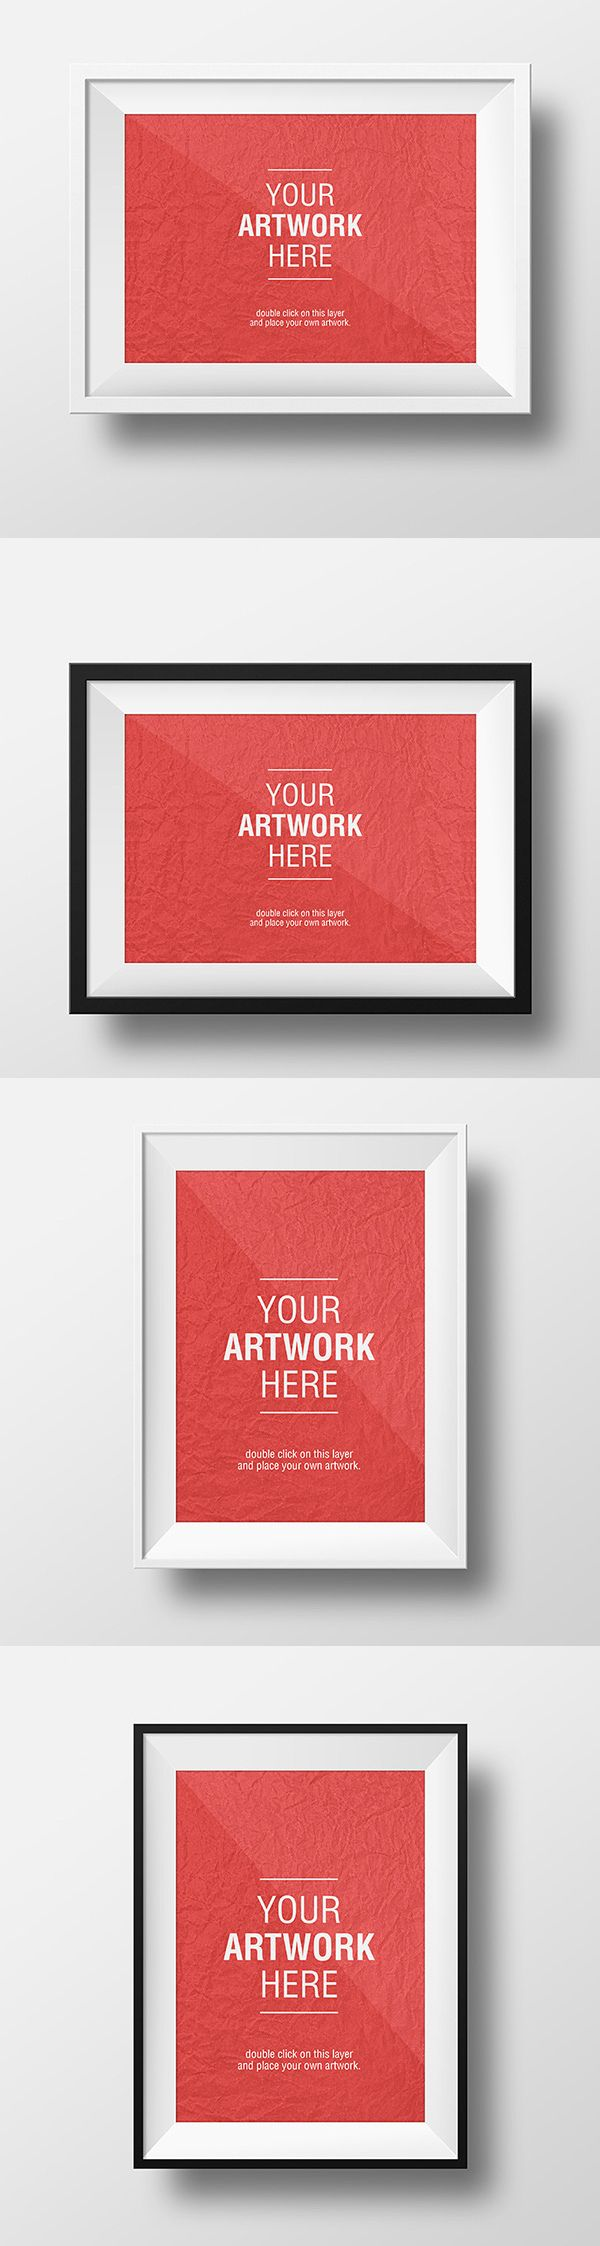 Best 25 Free poster templates ideas – Help Wanted Template Word